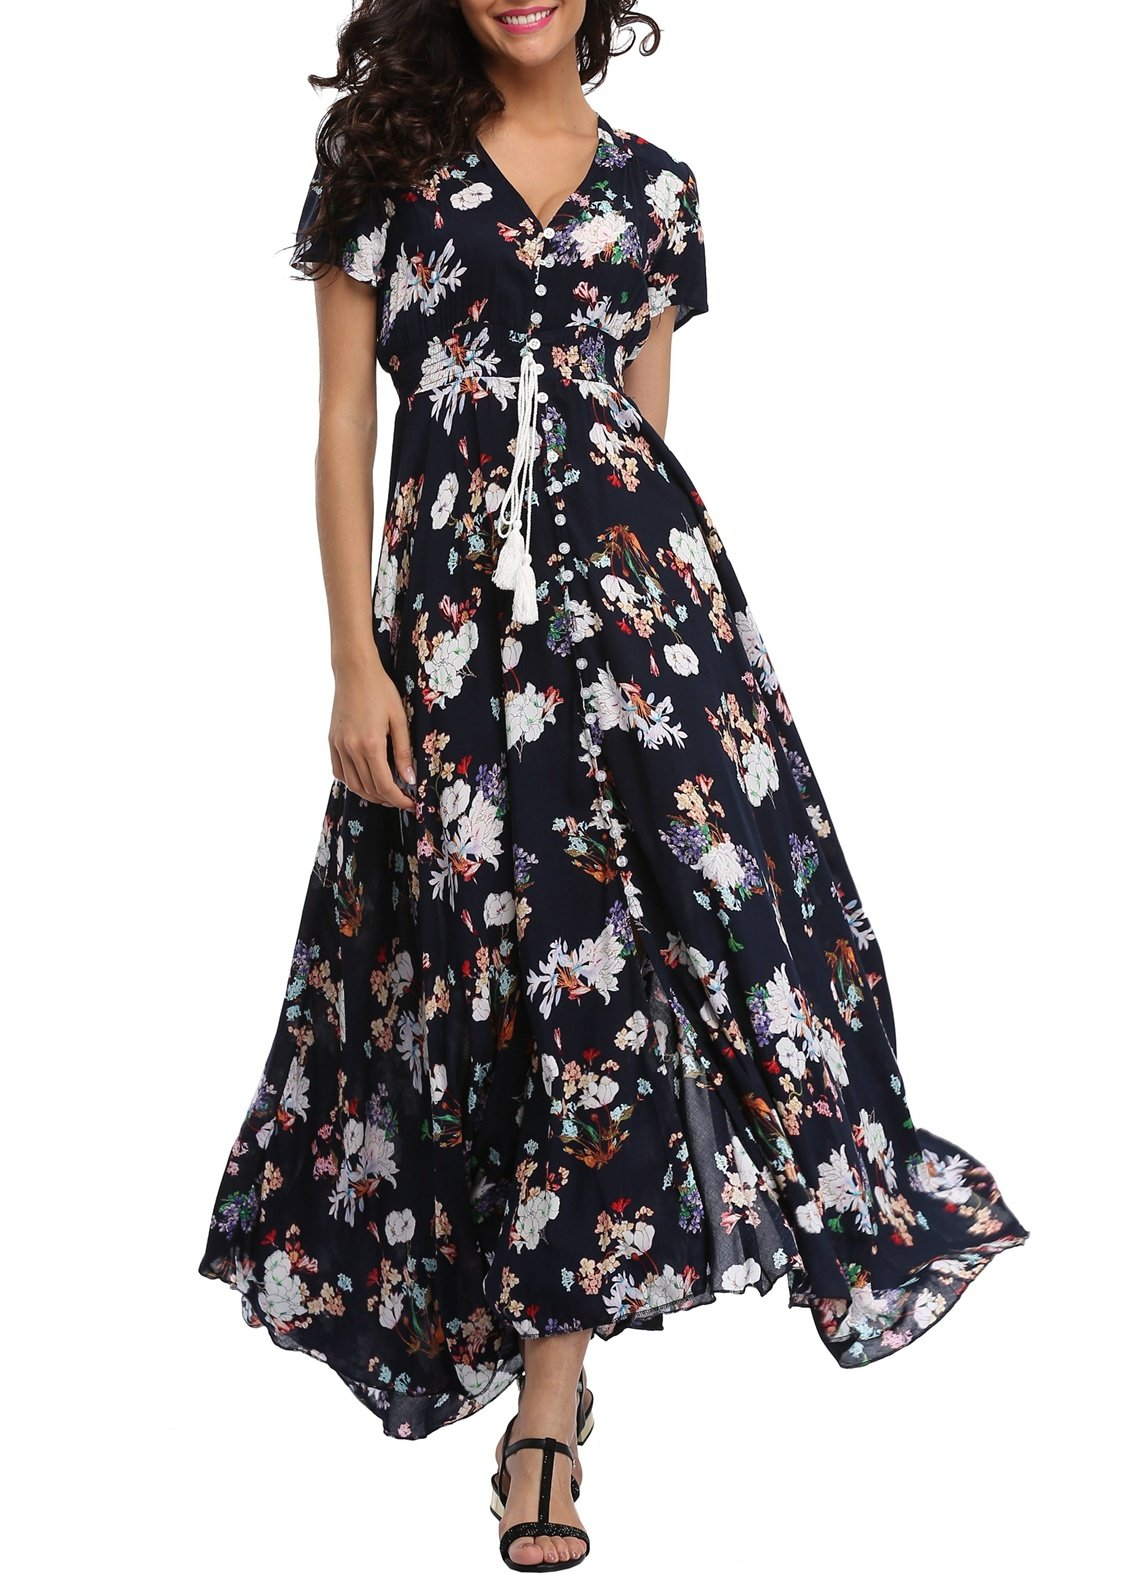 15 Stylish Dresses From Amazon Floral Maxi Dresses